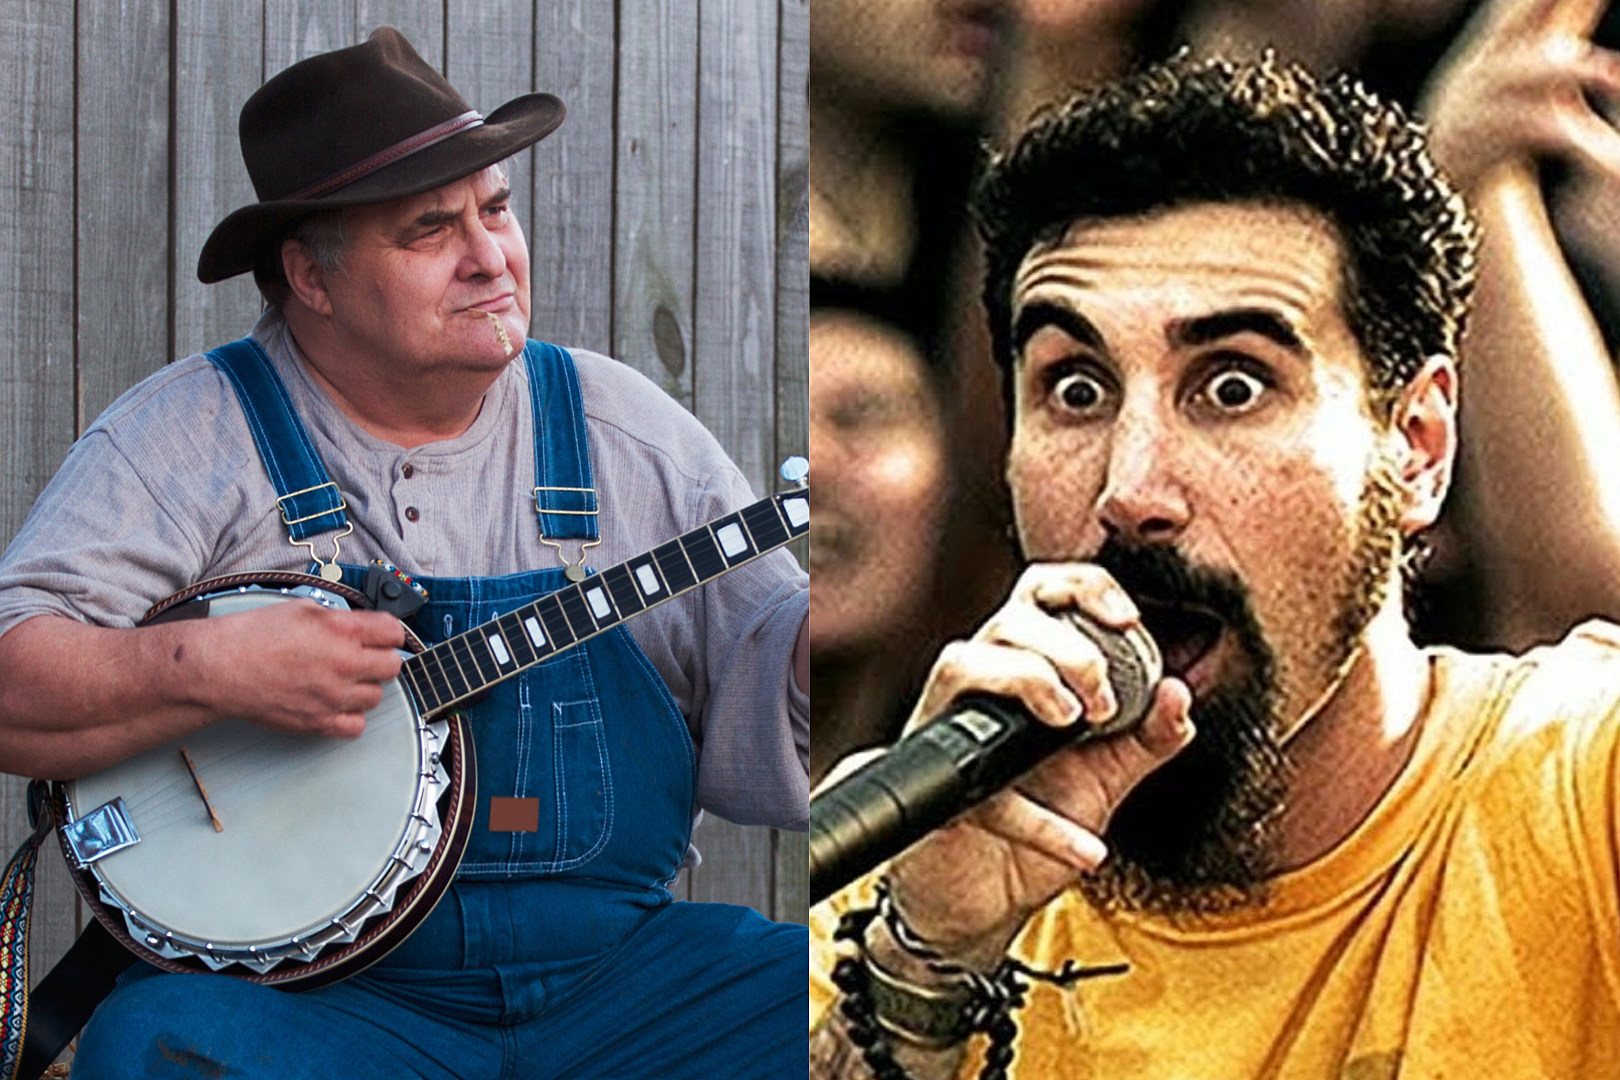 Pictured: A bluegrass banjo player (L) and System of a Down vocalist Serj Tankian from the 'Chop Suey!' music video.